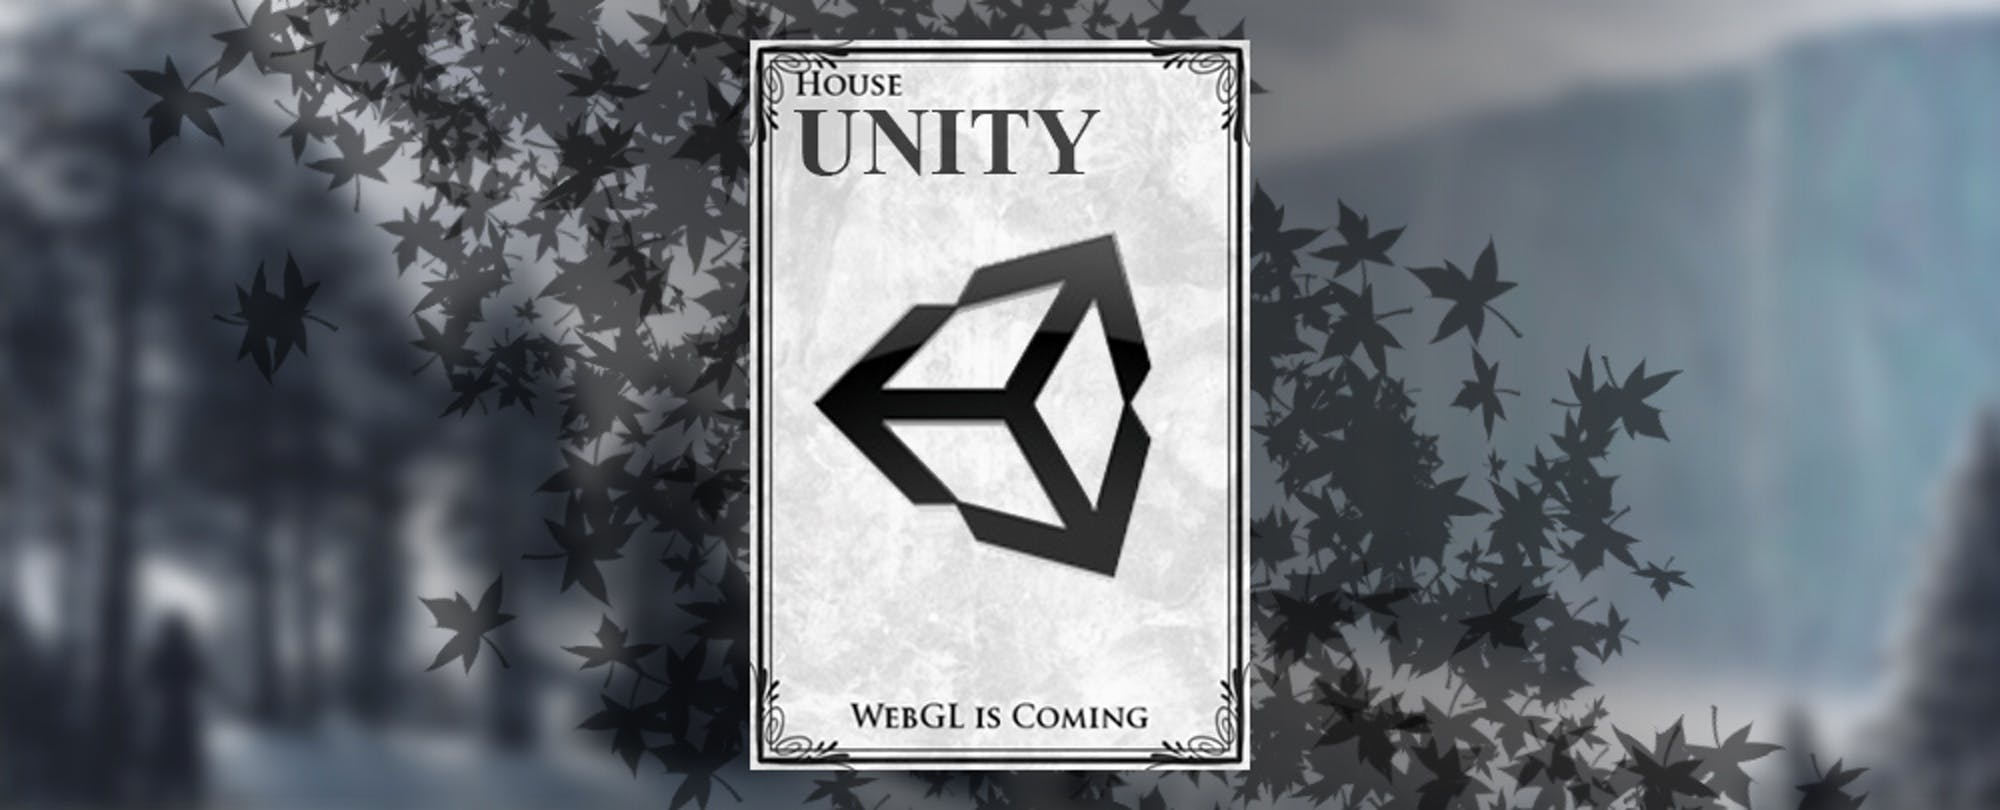 Unity: King of the Web, Teacher of Children, Betrayer of Men